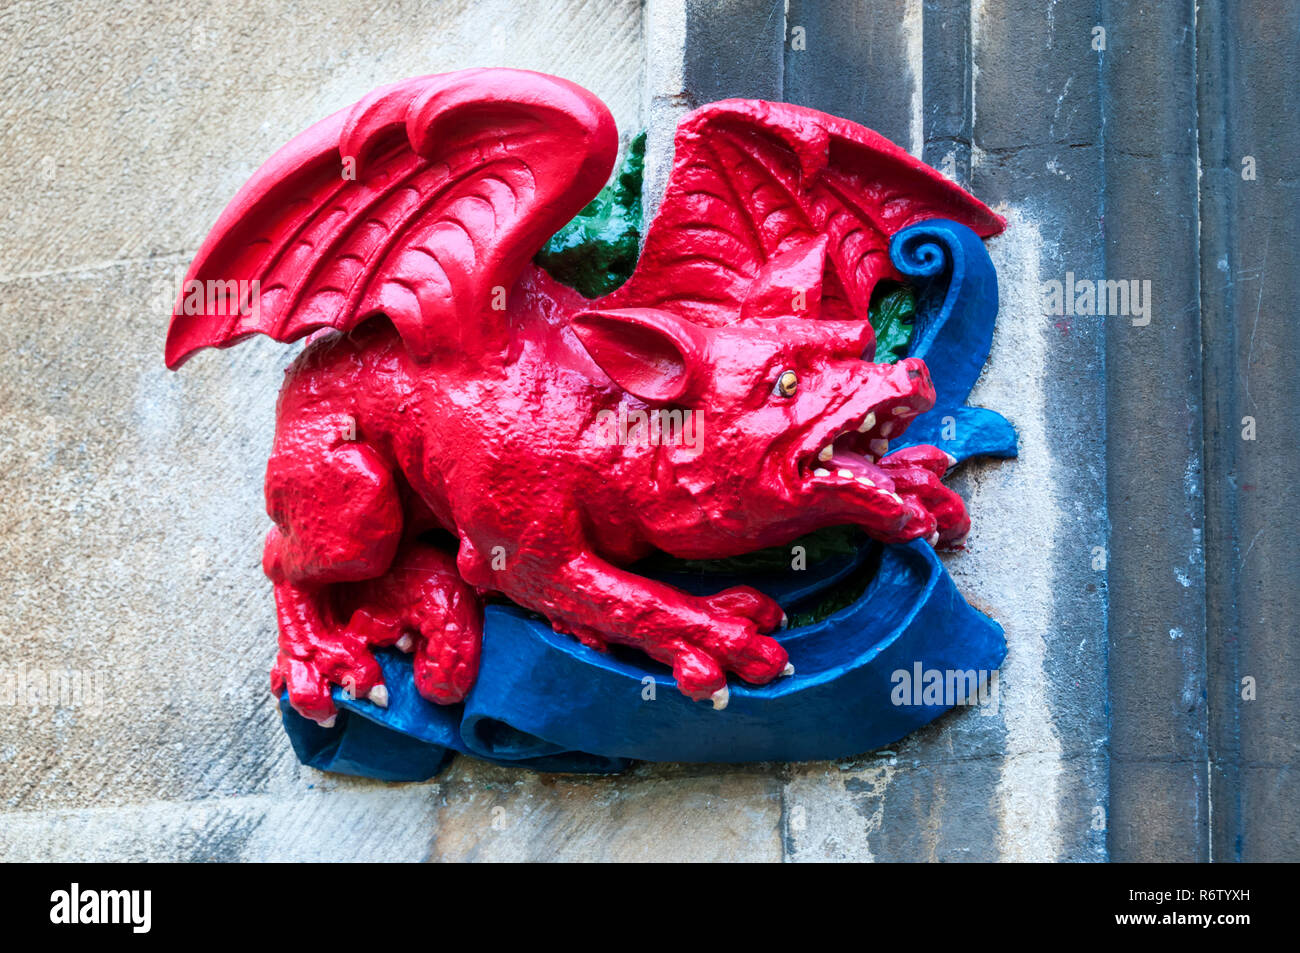 The carving of a dragon on the gateway between First and Second Courts at Christ's College, Cambridge refers to the Welsh ancestry of the Tudors. - Stock Image